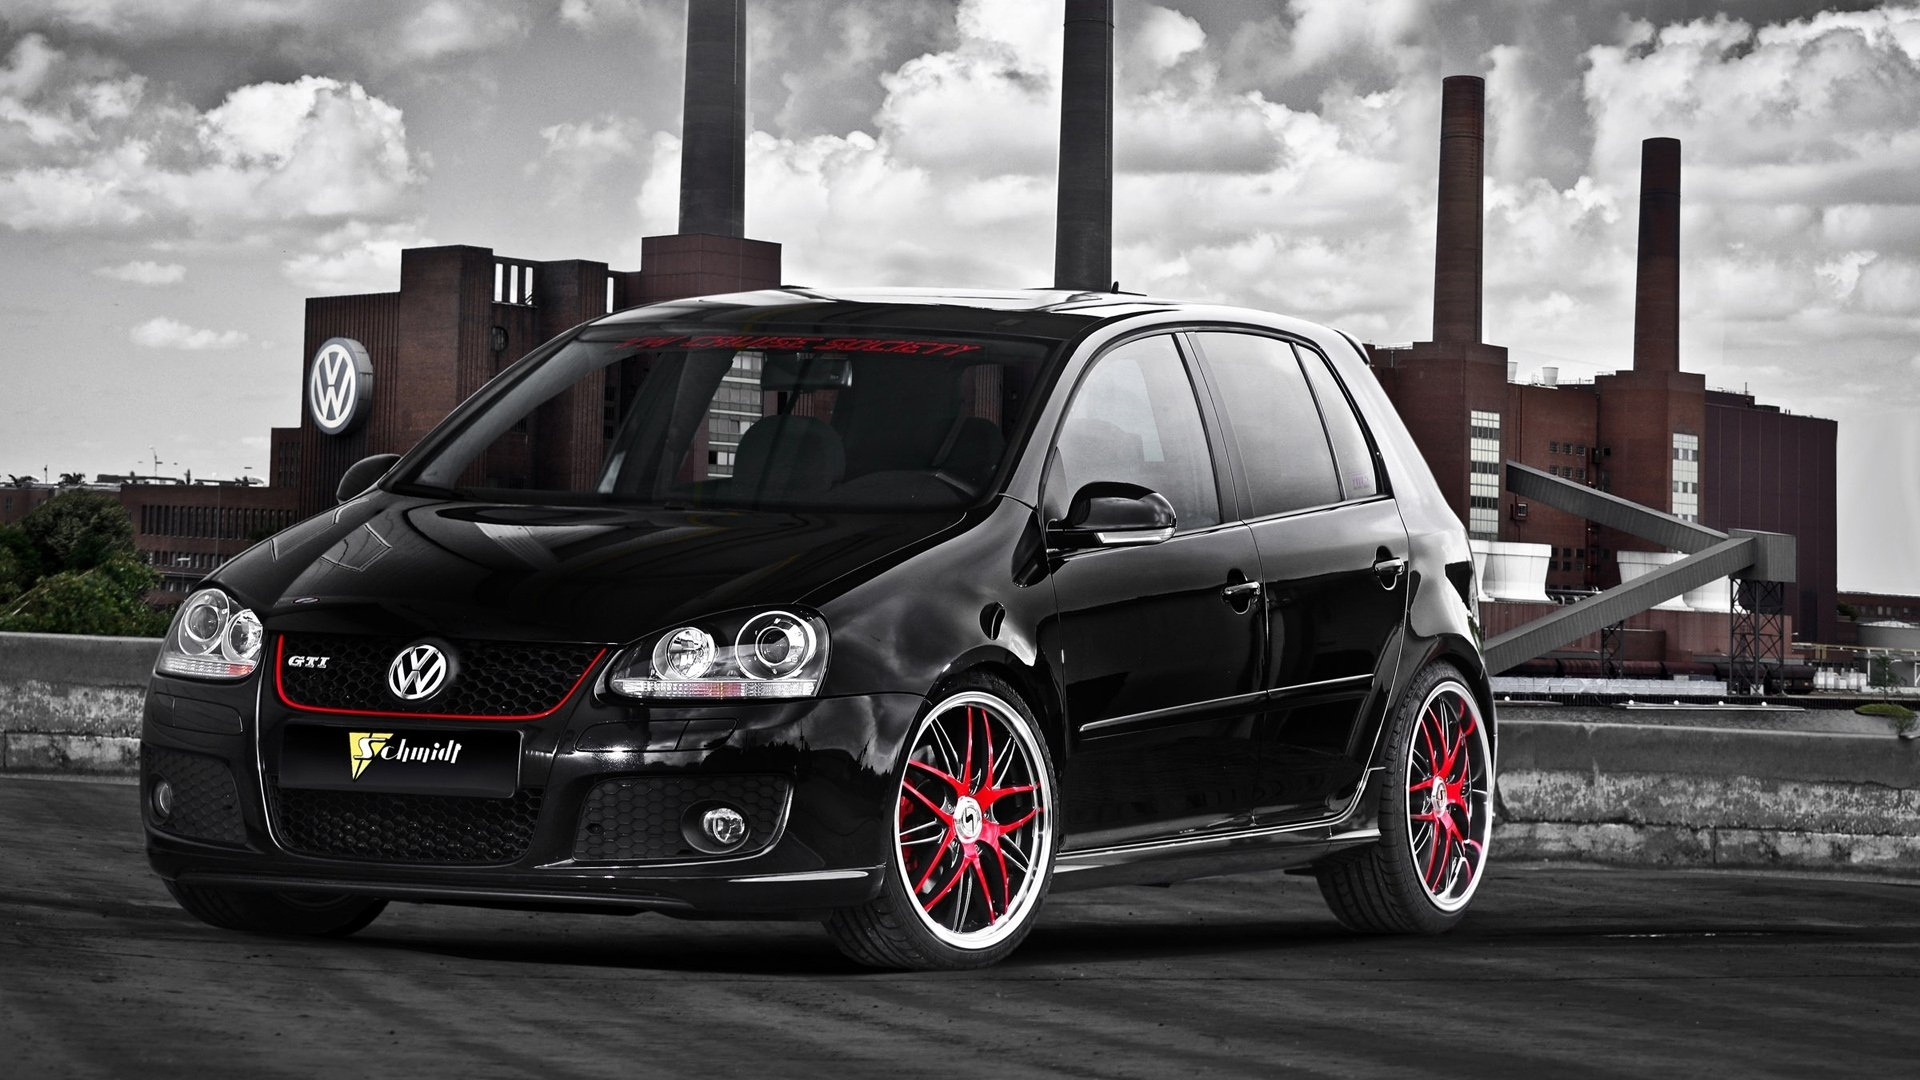 volkswagen golf gti download wallpaper. Black Bedroom Furniture Sets. Home Design Ideas